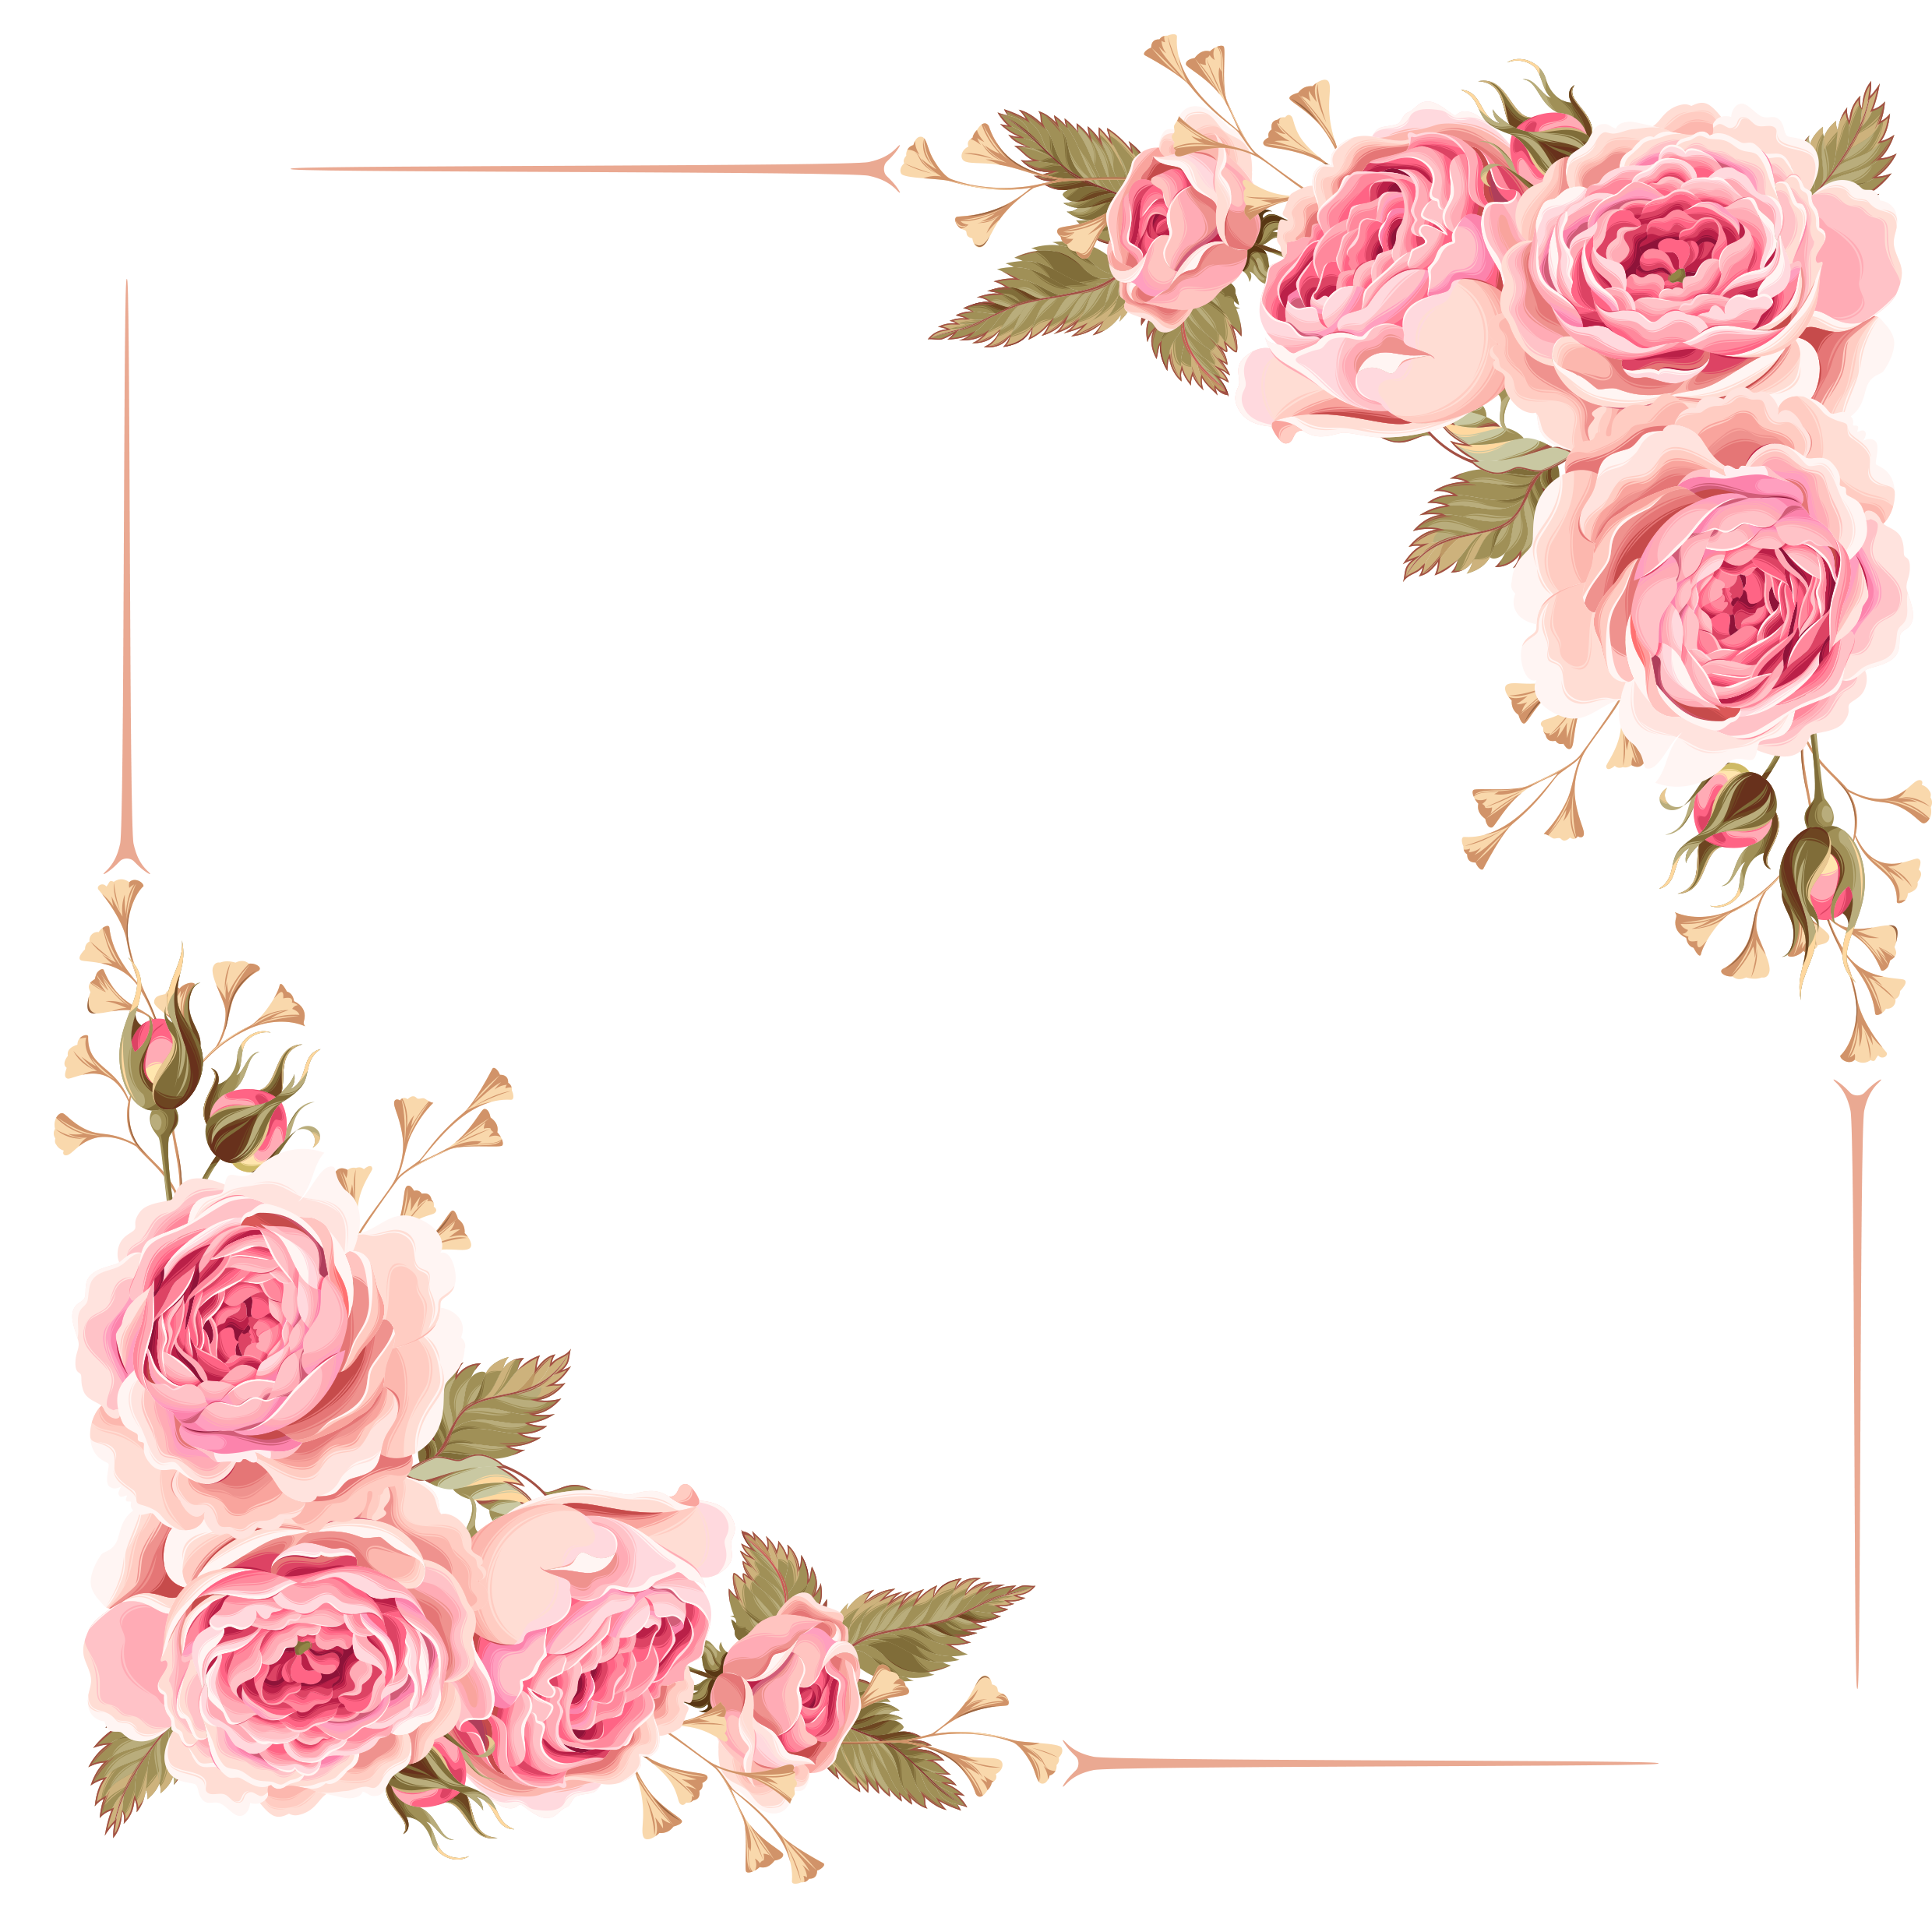 Dusty rose colored flower free clipart boarder free Pink roses borders clipart images gallery for free download | MyReal ... free